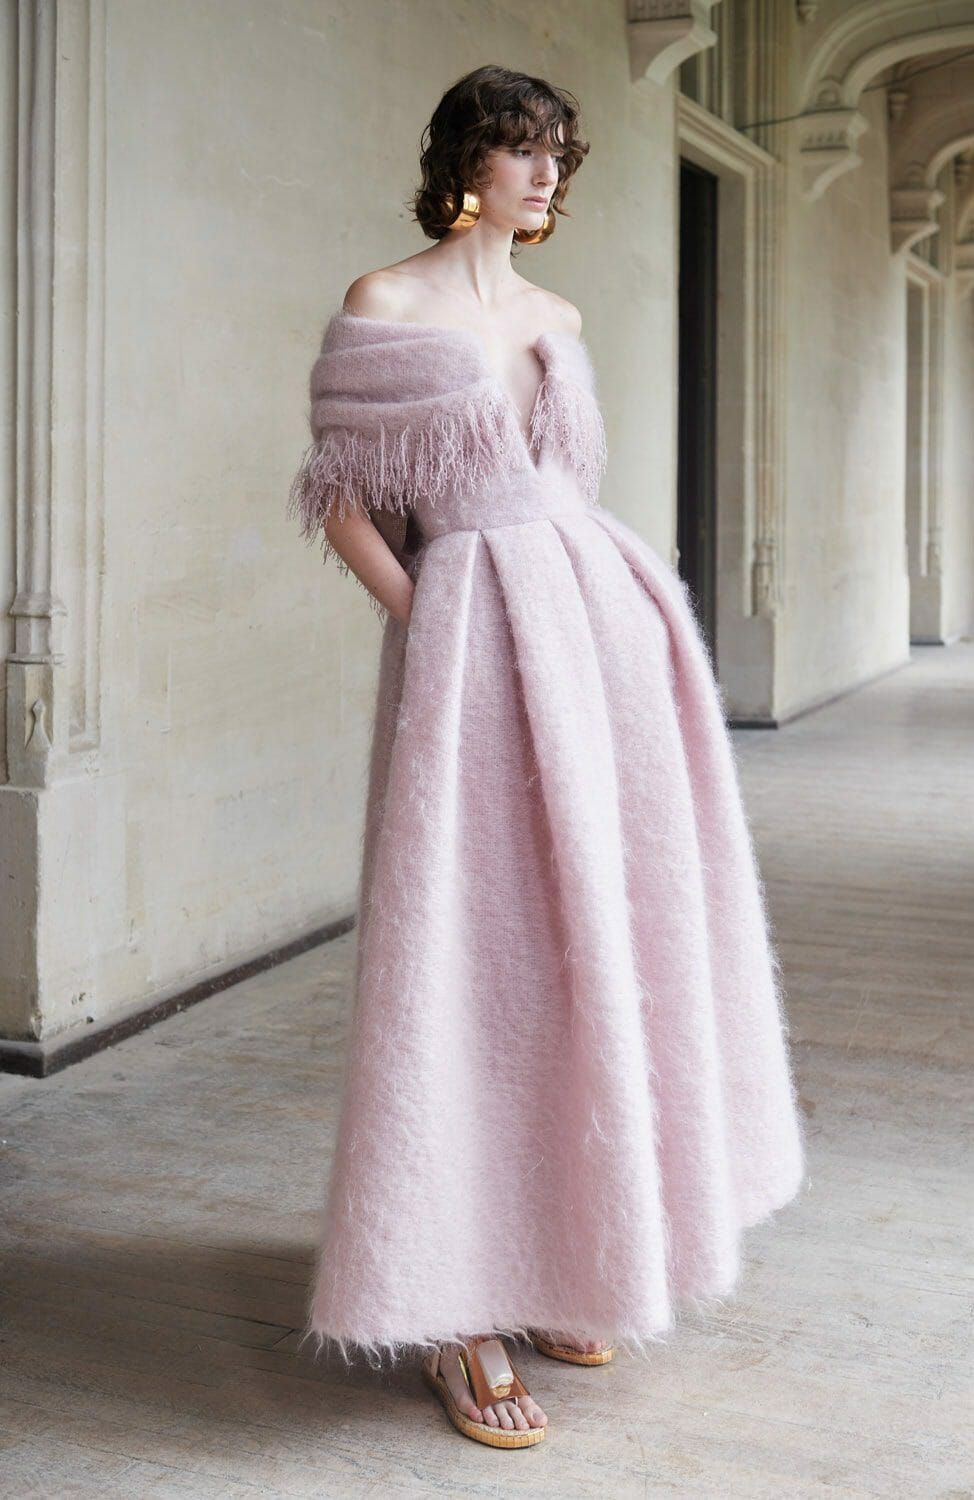 Christophe Josse Couture Fall Winter 2021-2022. RUNWAY MAGAZINE ® Collections. RUNWAY NOW / RUNWAY NEW